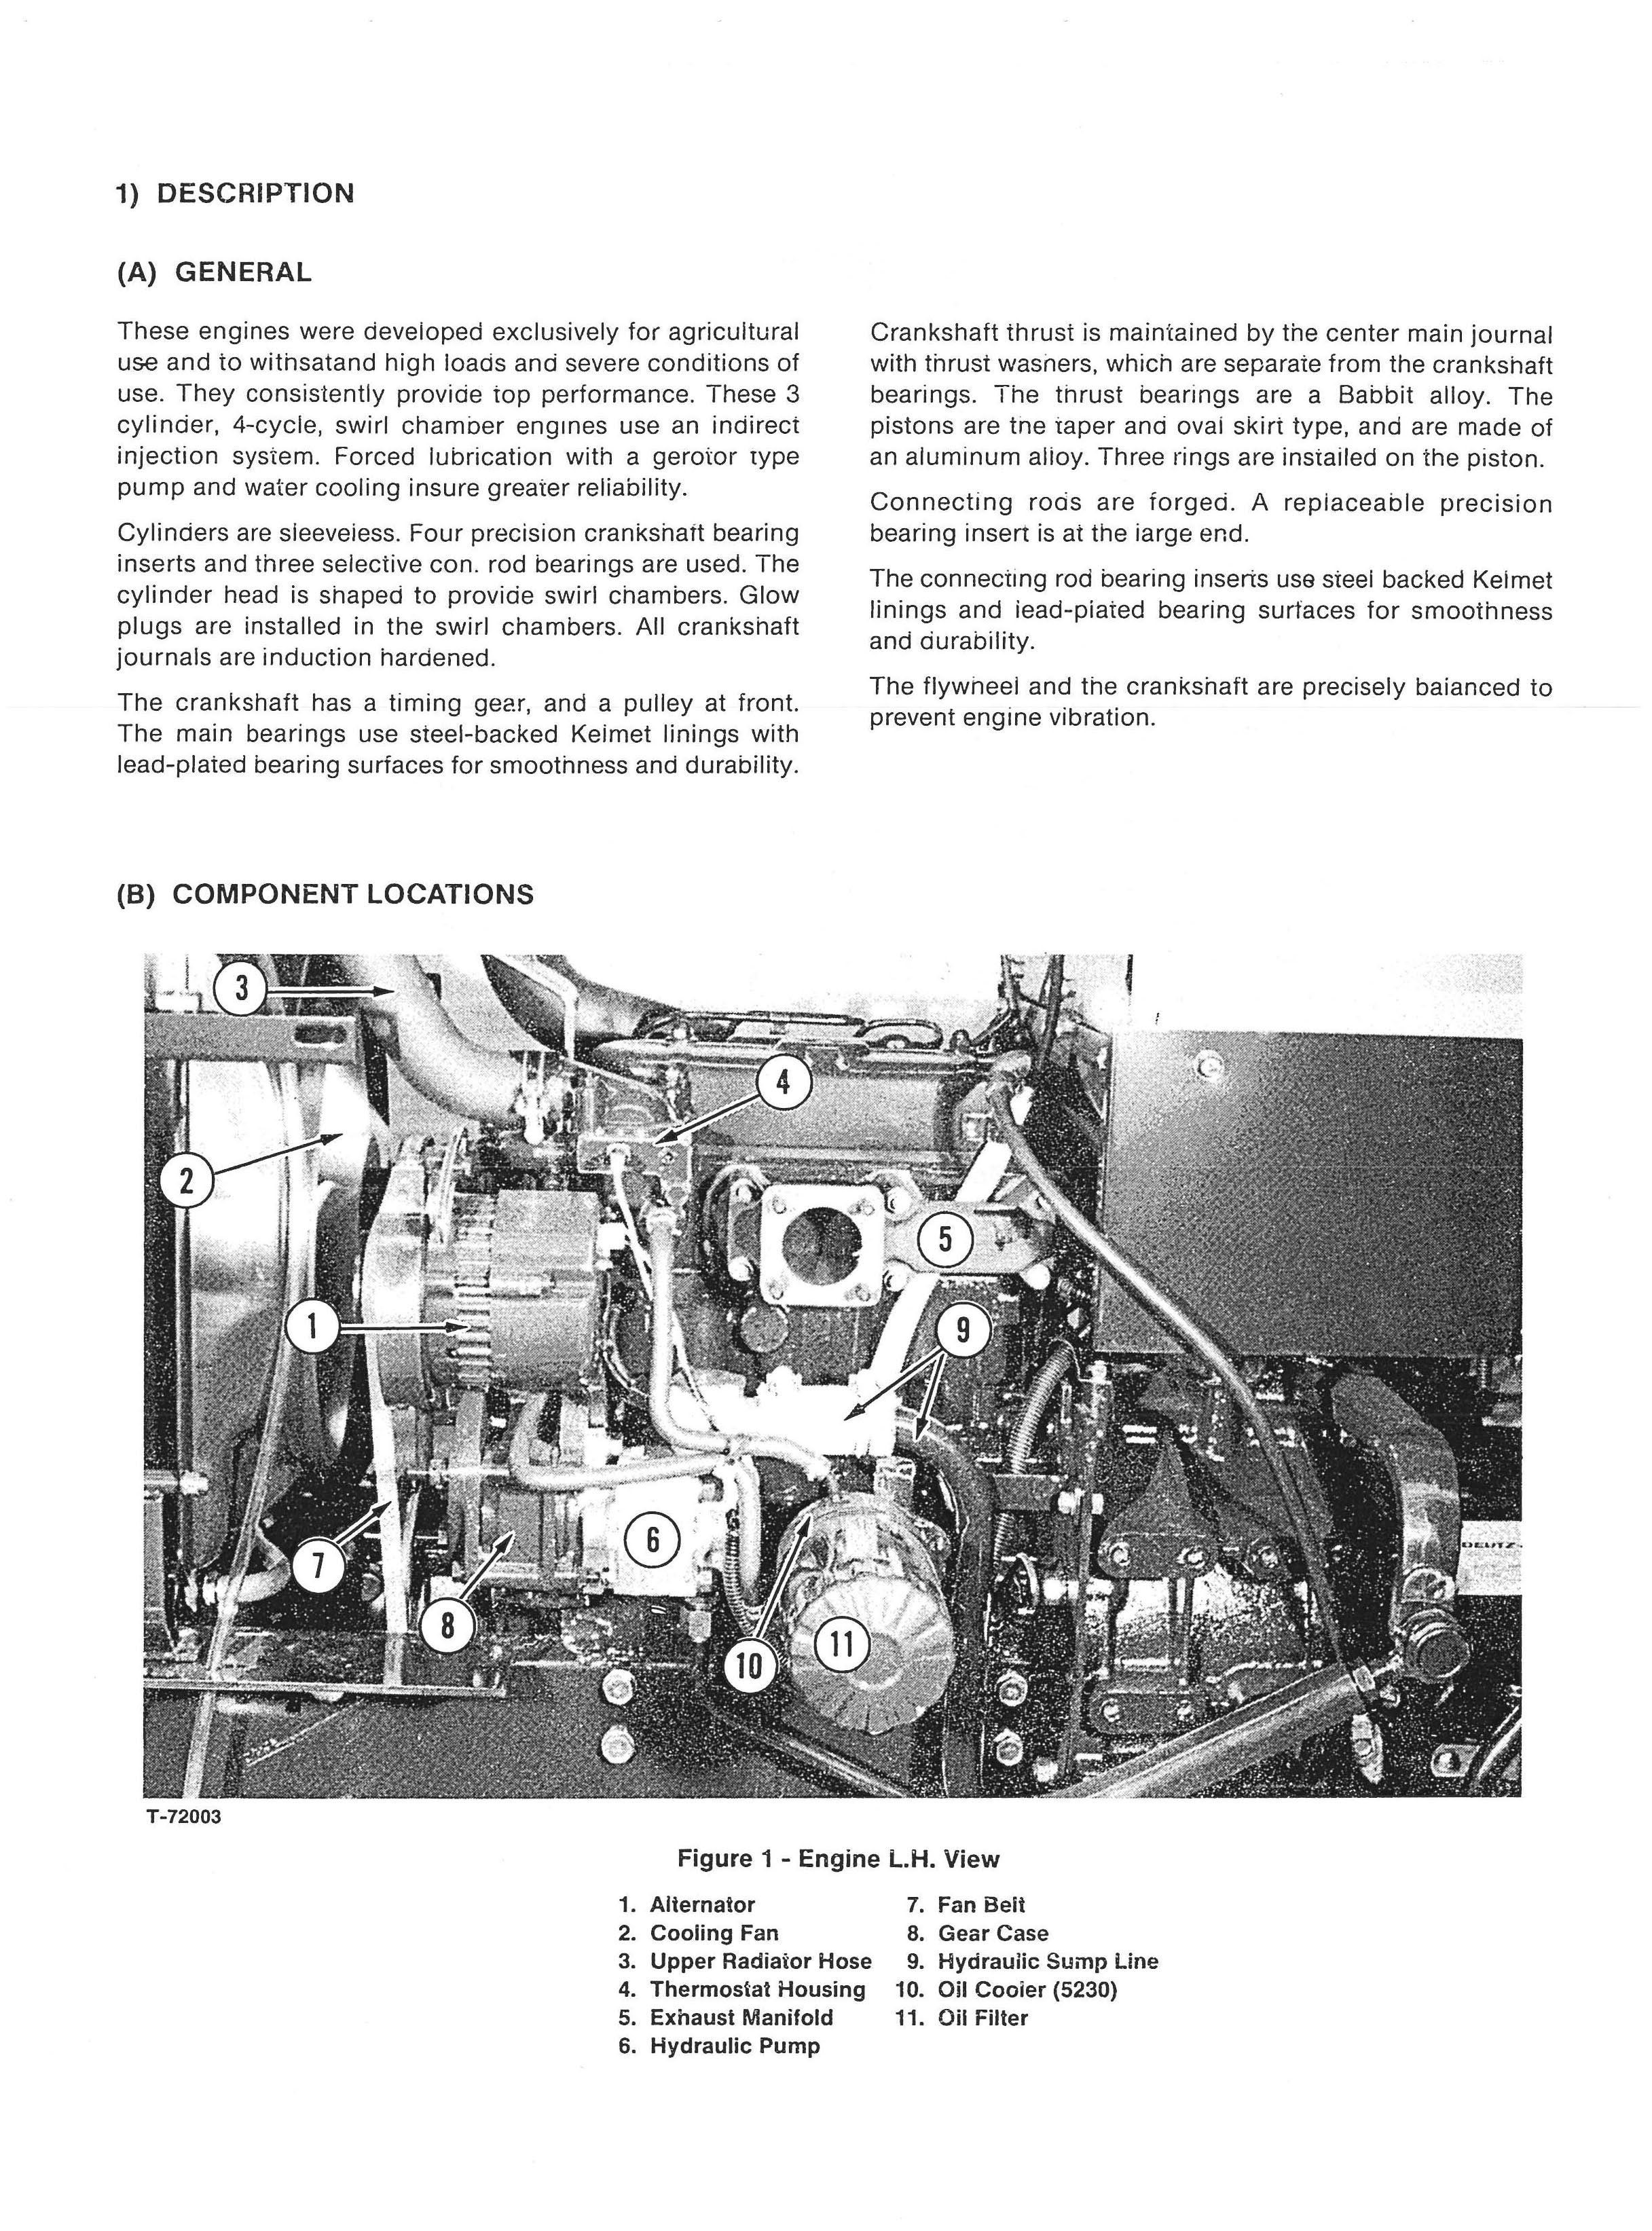 Deutz Allis 1920 Wiring Diagram Flovent Coupon Cvs Simplicity Tractor D8006 Service Manual Unknown Bindingtwo Hp Sizes Model 1918 With 18 And 20